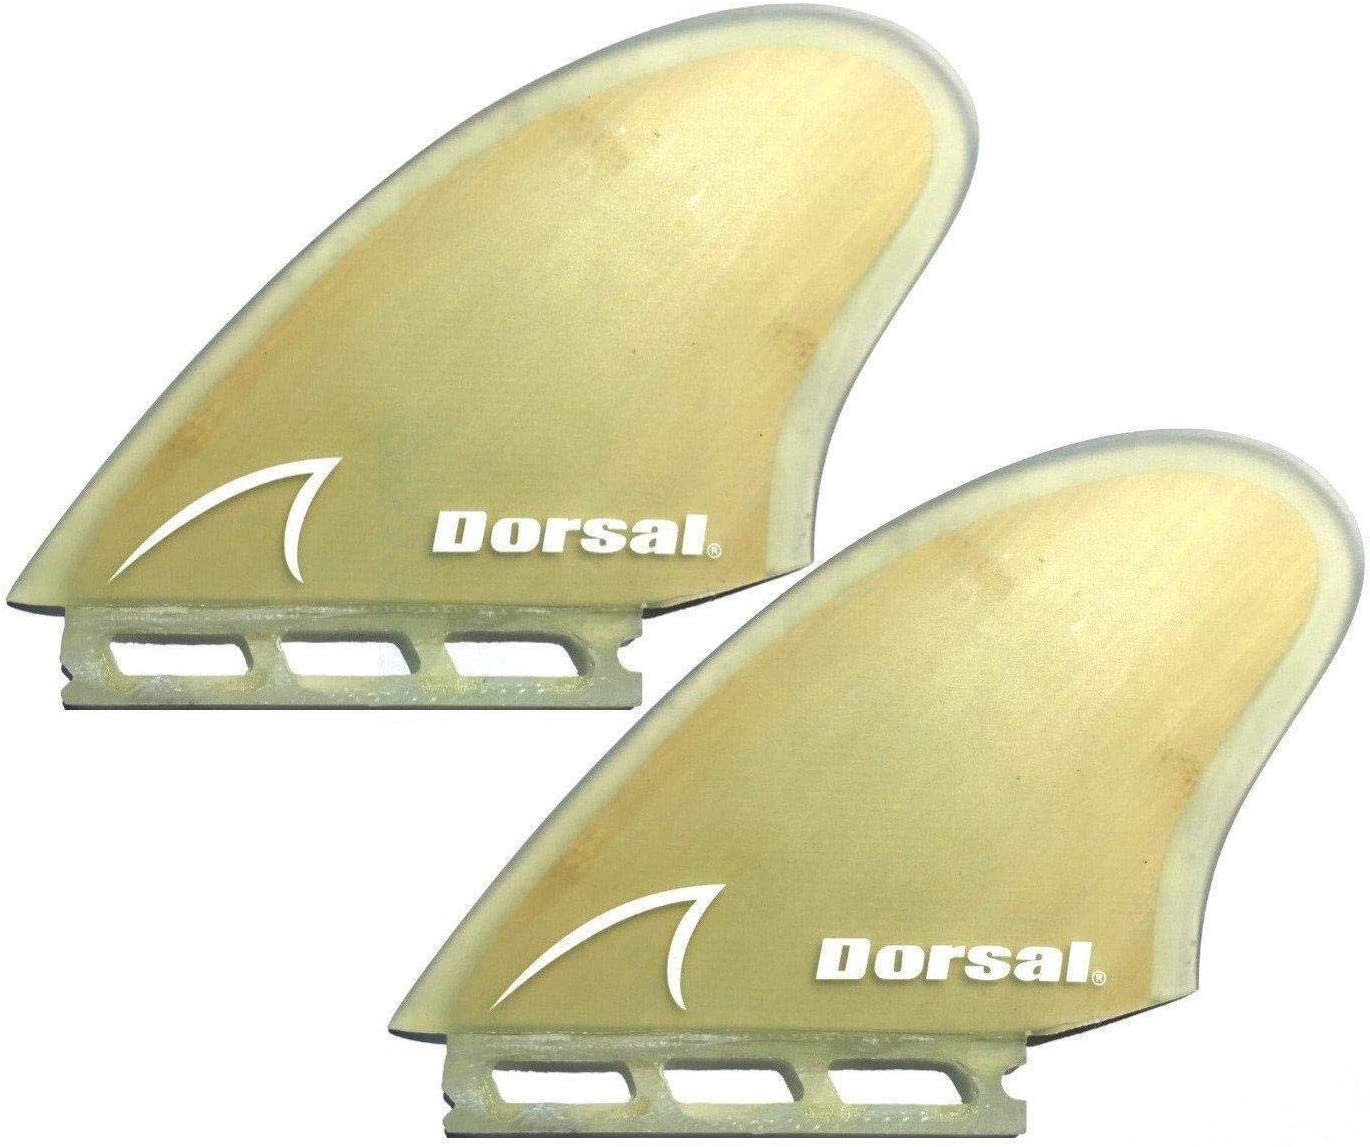 Over item handling ☆ DORSAL FUT Fin Compatible Keel New product! New type Twin Bamboo Surfboard - Set